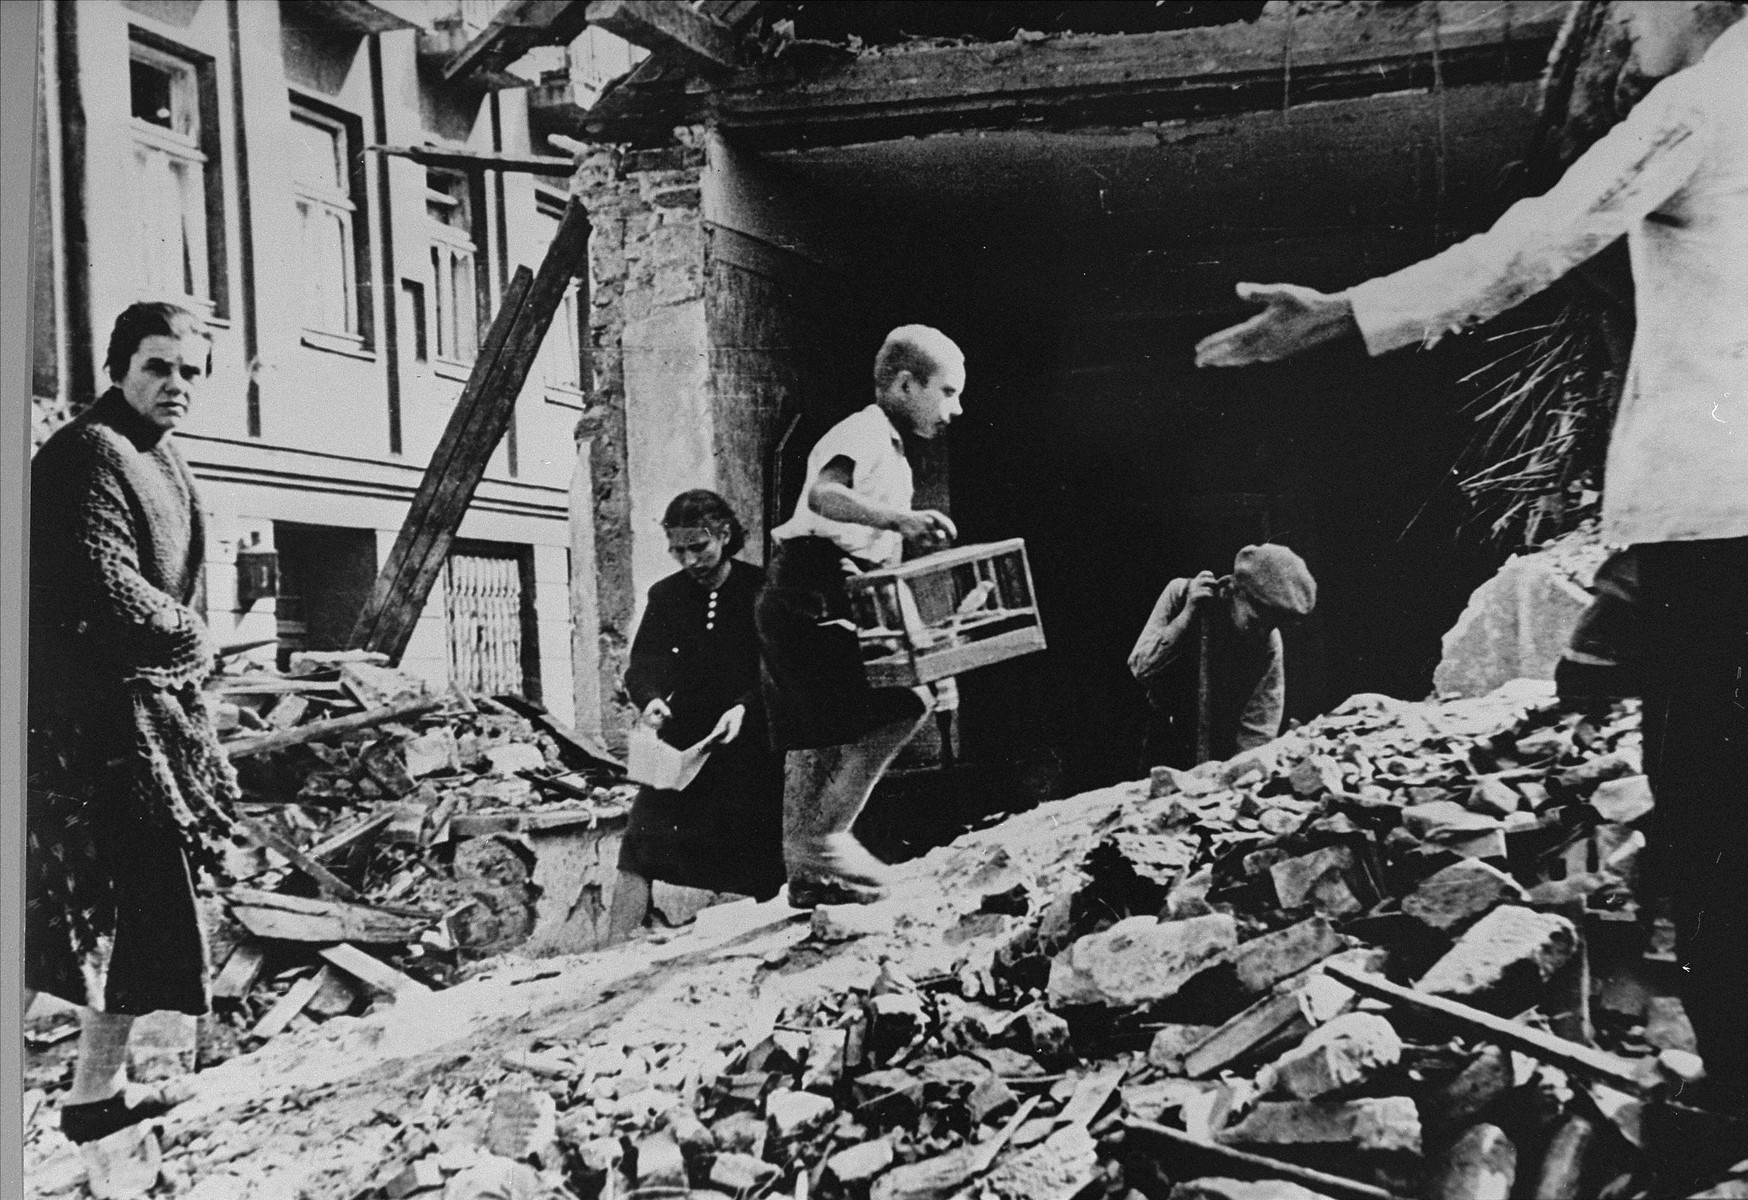 "Polish civilians salvage items from the ruins of their homes in Warsaw after a German air raid.   The child carrying the birdcage is Zygmunt Askienow.  In the words of photographer Julien Bryan, ""Not far from the center of town a bomb had hit an apartment house and exposed the first, second, and third floors.  A boy was walking dazedly back and forth carrying the one possession he had found -- a canary in its cage.  He walked up and down over a pile of stones and bricks.  Under the pile there were nine or ten bodies, so the neighbors told us, not yet recovered."" [Source: Bryan, Julien.  ""Warsaw 1939 Siege, 1959 Warsaw Revisited.""  Warsaw, Polonia, 1959, p. 24]"